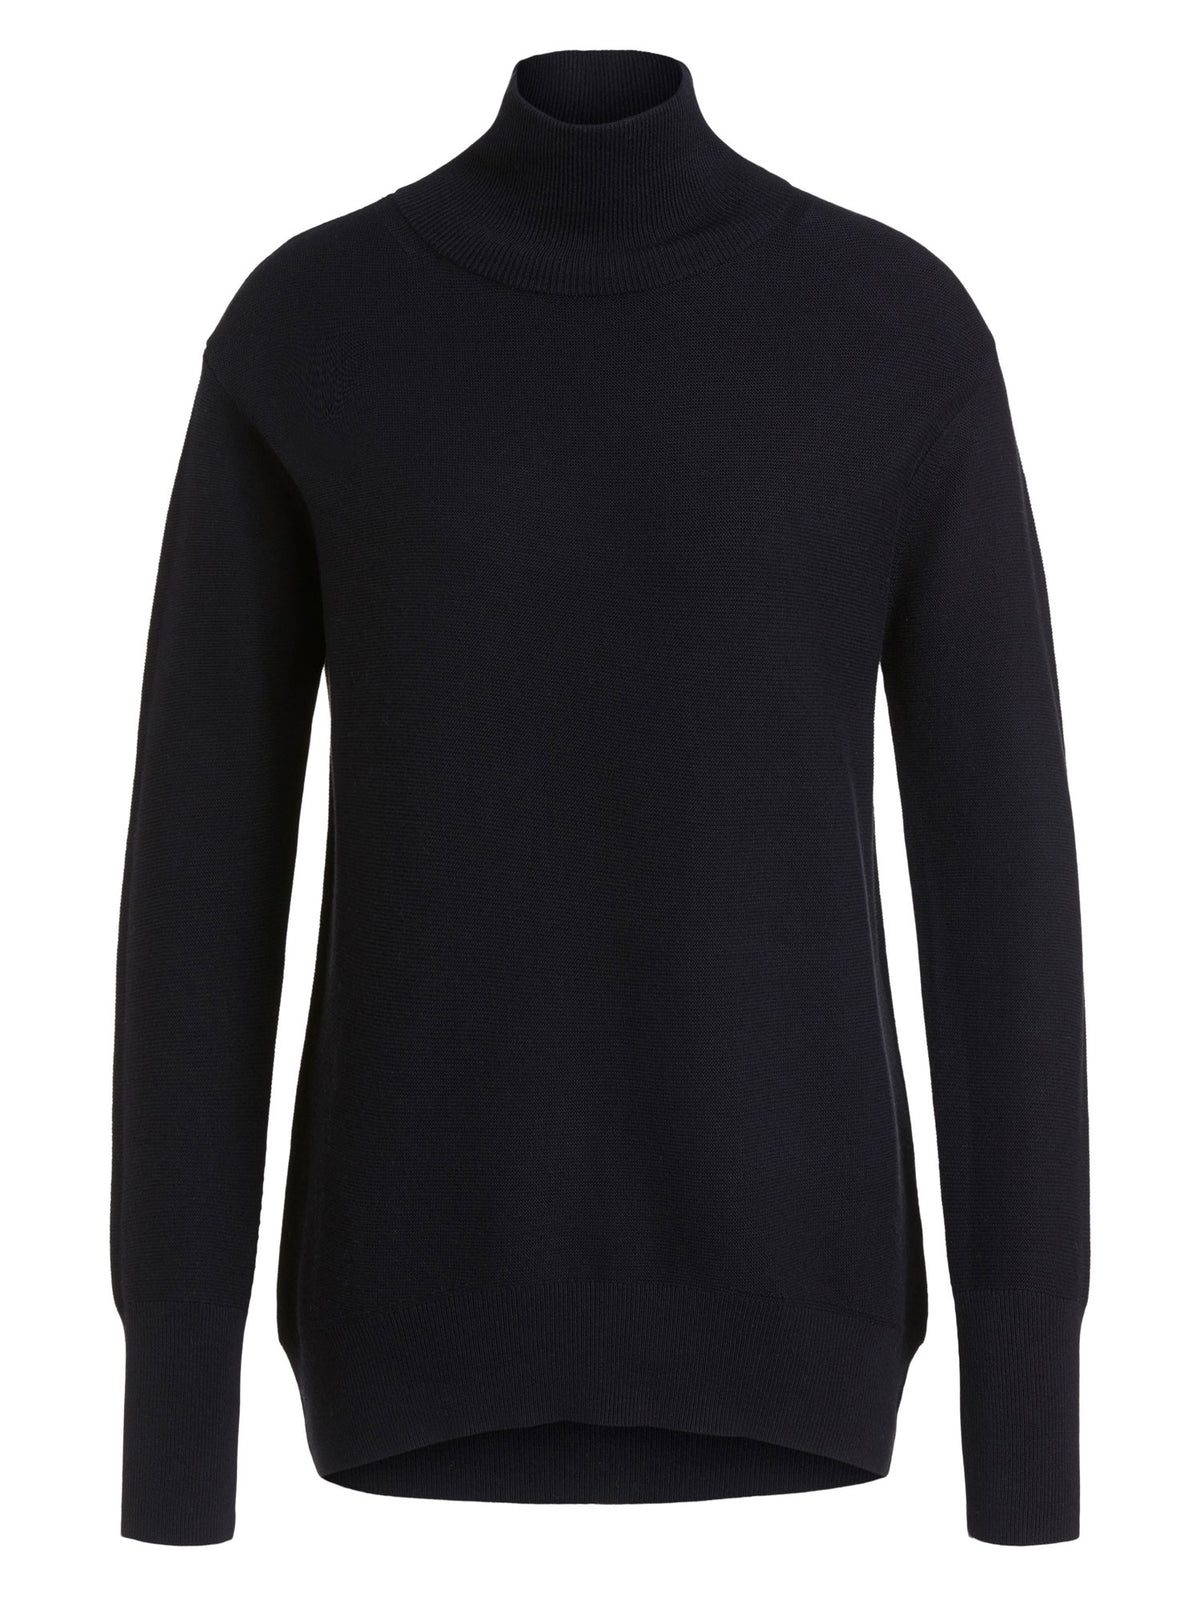 Oui Funnel Neck Jumper Black